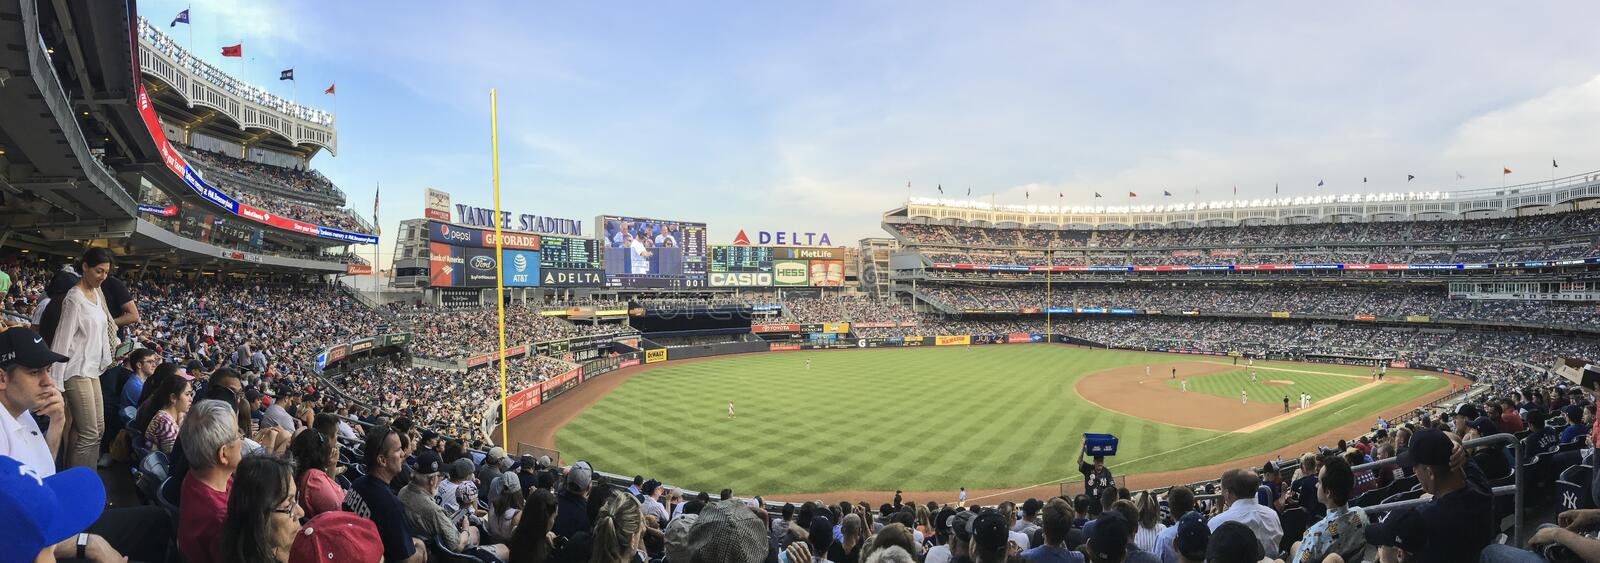 New York, USA; June 22, 2017; Match between the New York Yankees and Los Angeles Angels at Yankee Stadium royalty free stock images